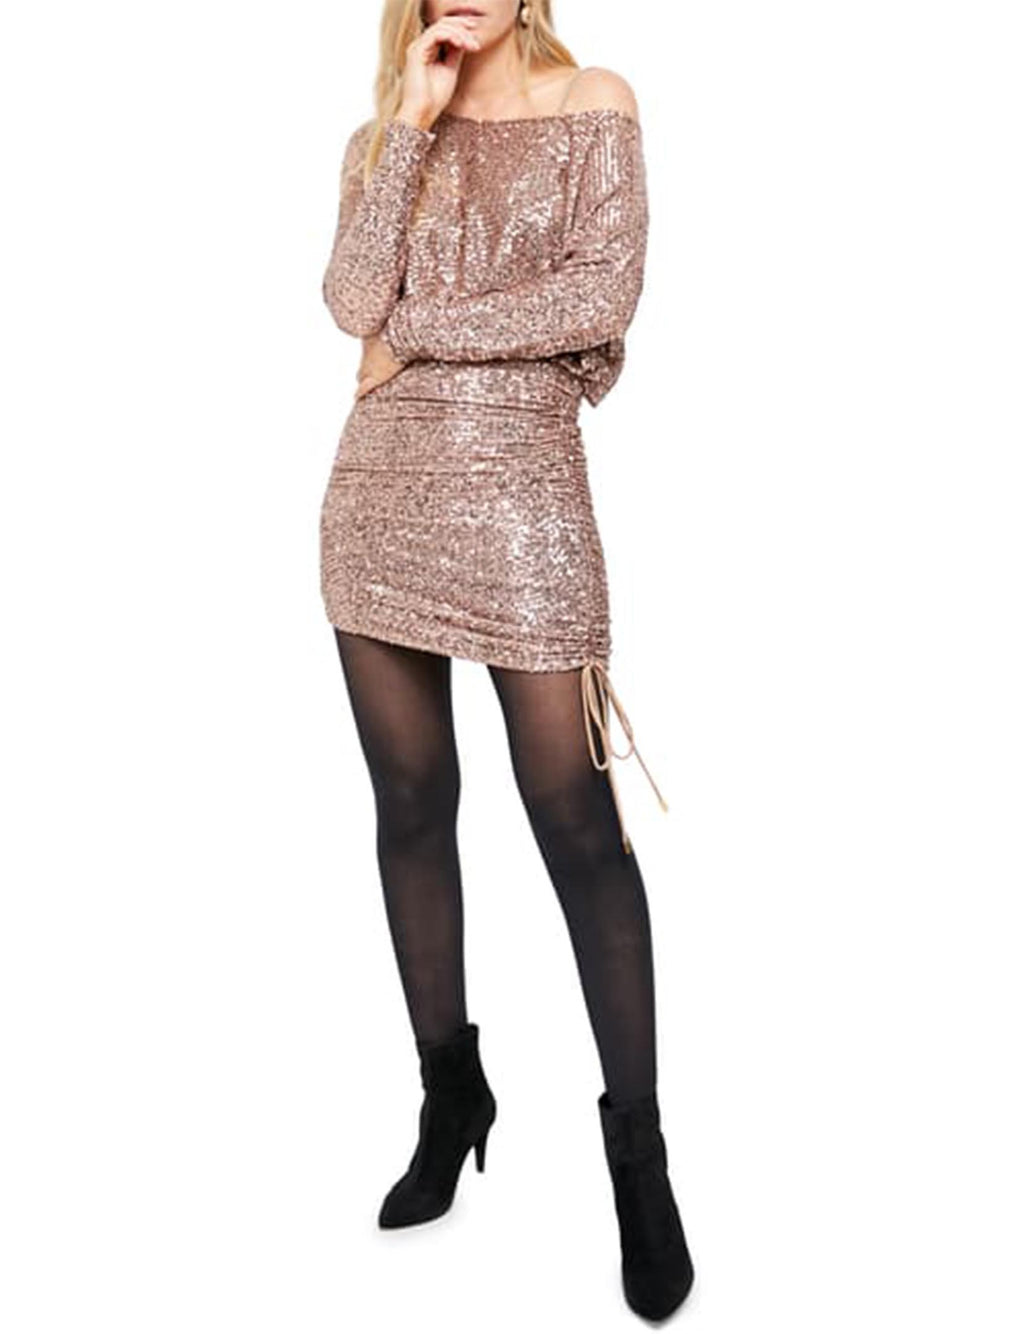 Giselle Mini Dress in Rose Gold